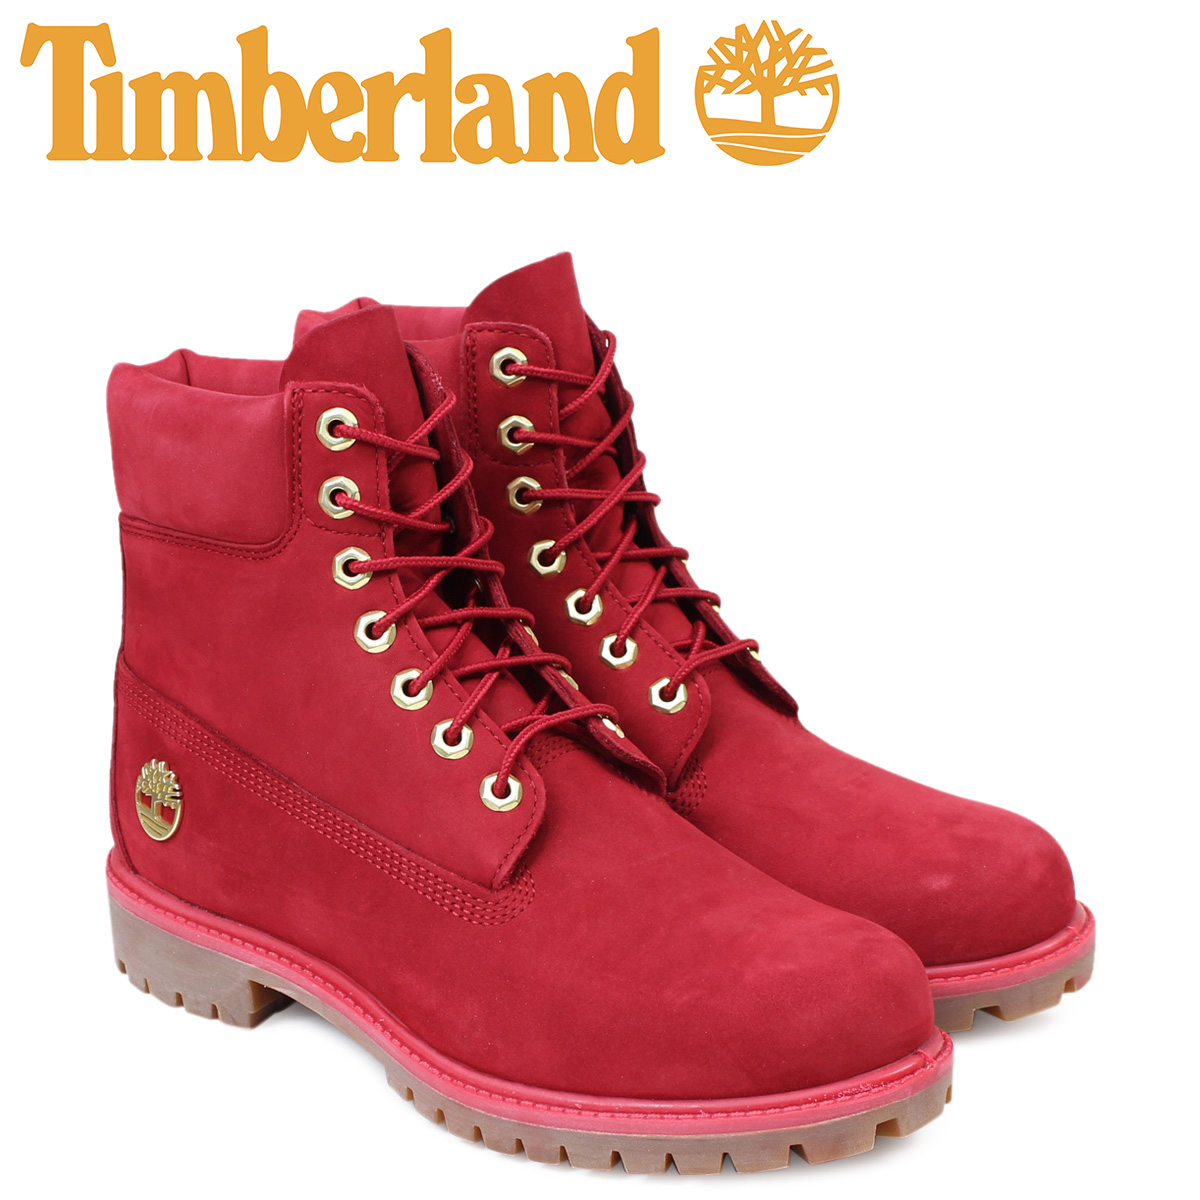 6 inches of Timberland men s timberland boots premium 6INCHI 6-INCH PREMIUM  WATERPLOOF BOOTS A1JLT W Wise red waterproofing  1 31 Shinnyu load  dca102f61d74